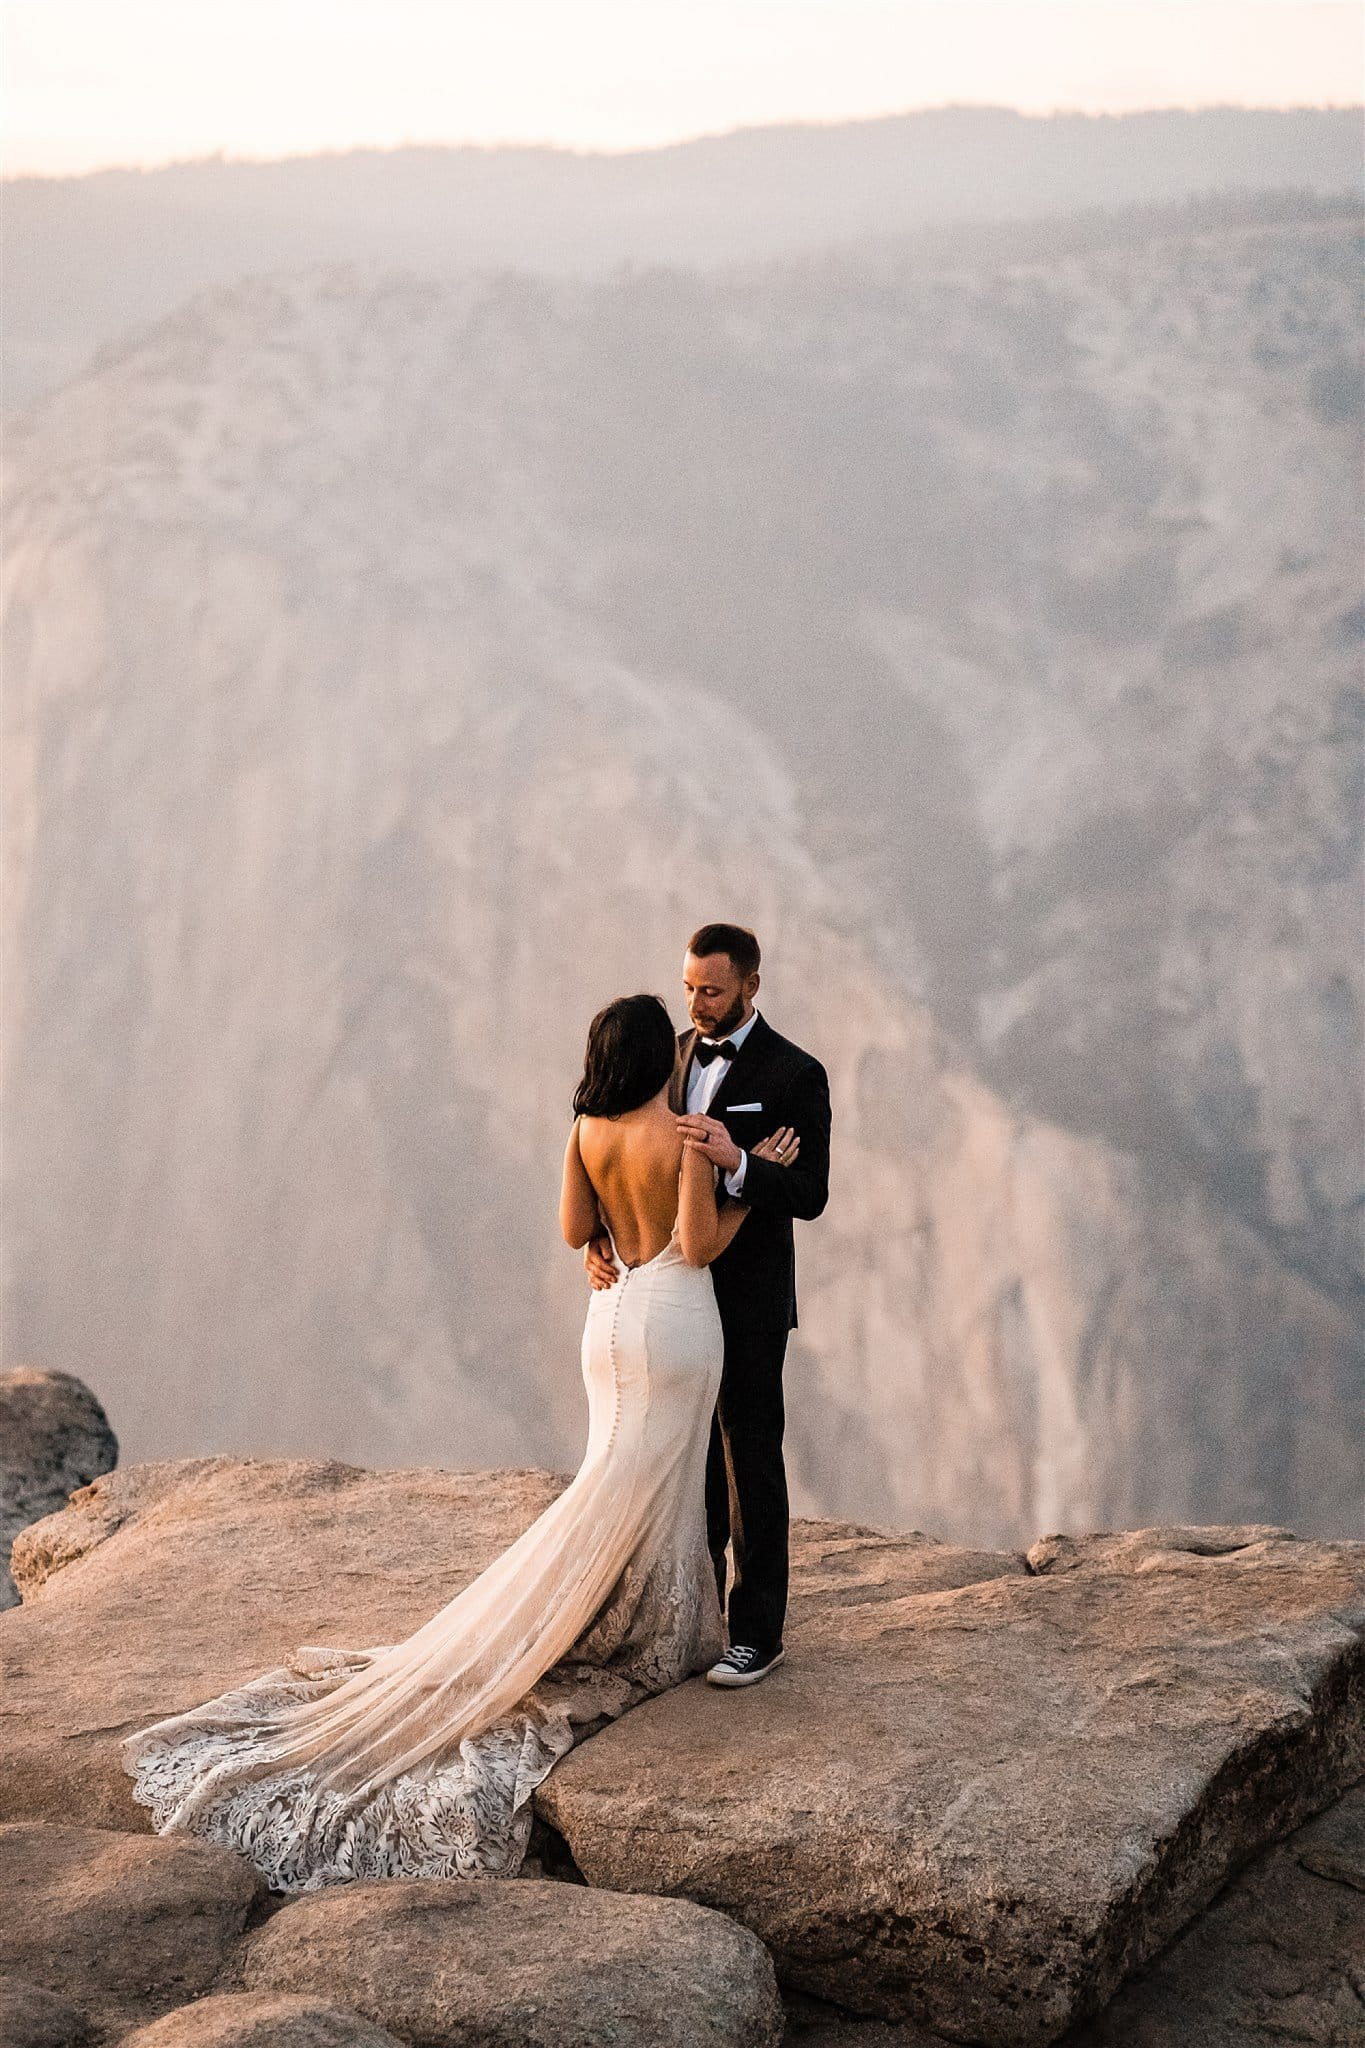 Taft_Point_Elopement_The_Foxes_Photography_0020.jpg